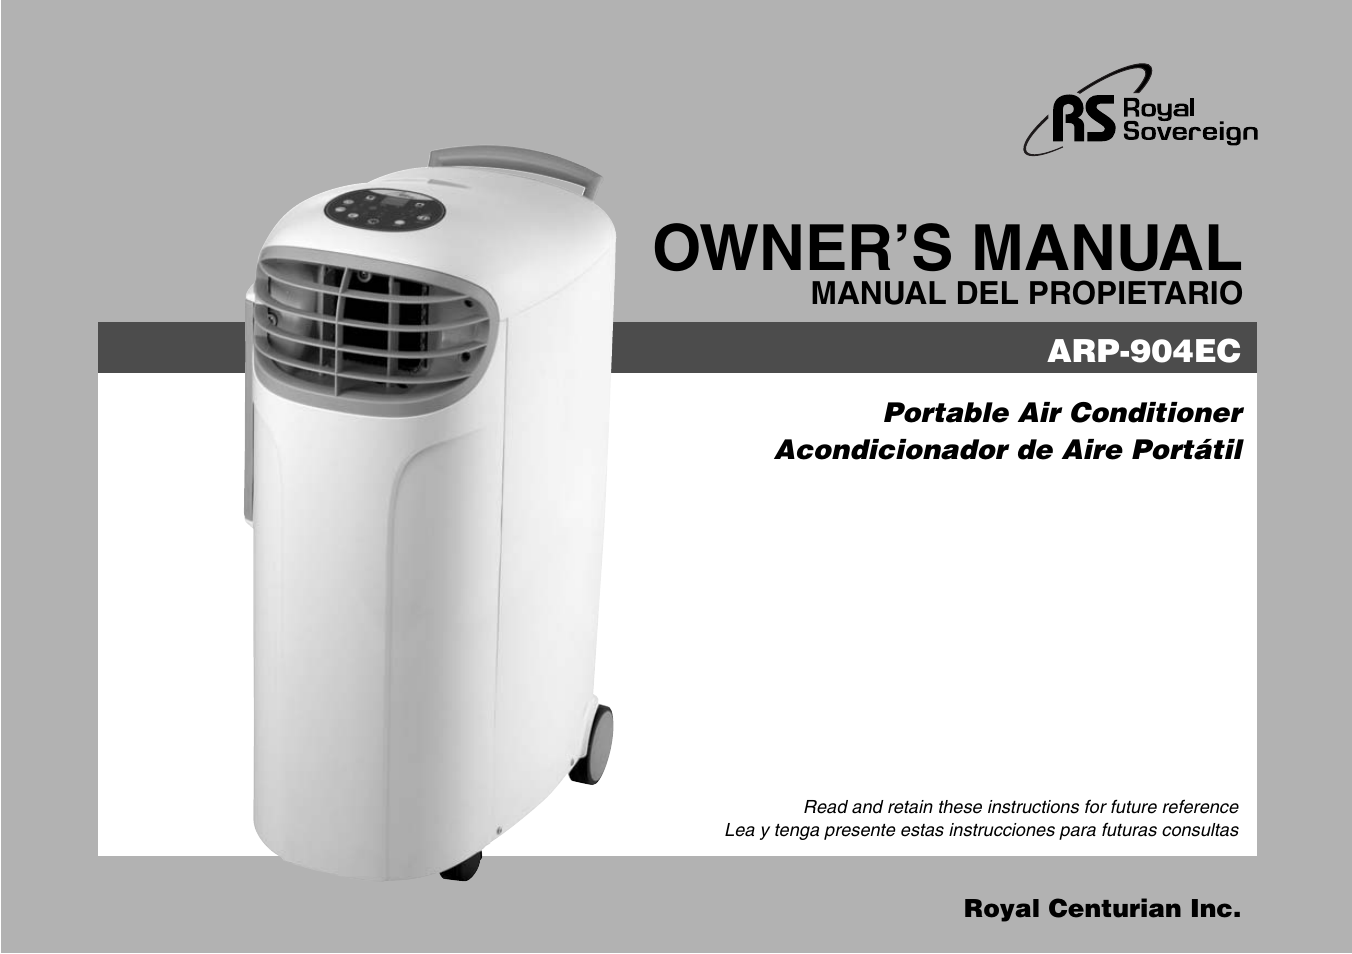 royal sovereign air conditioner manual